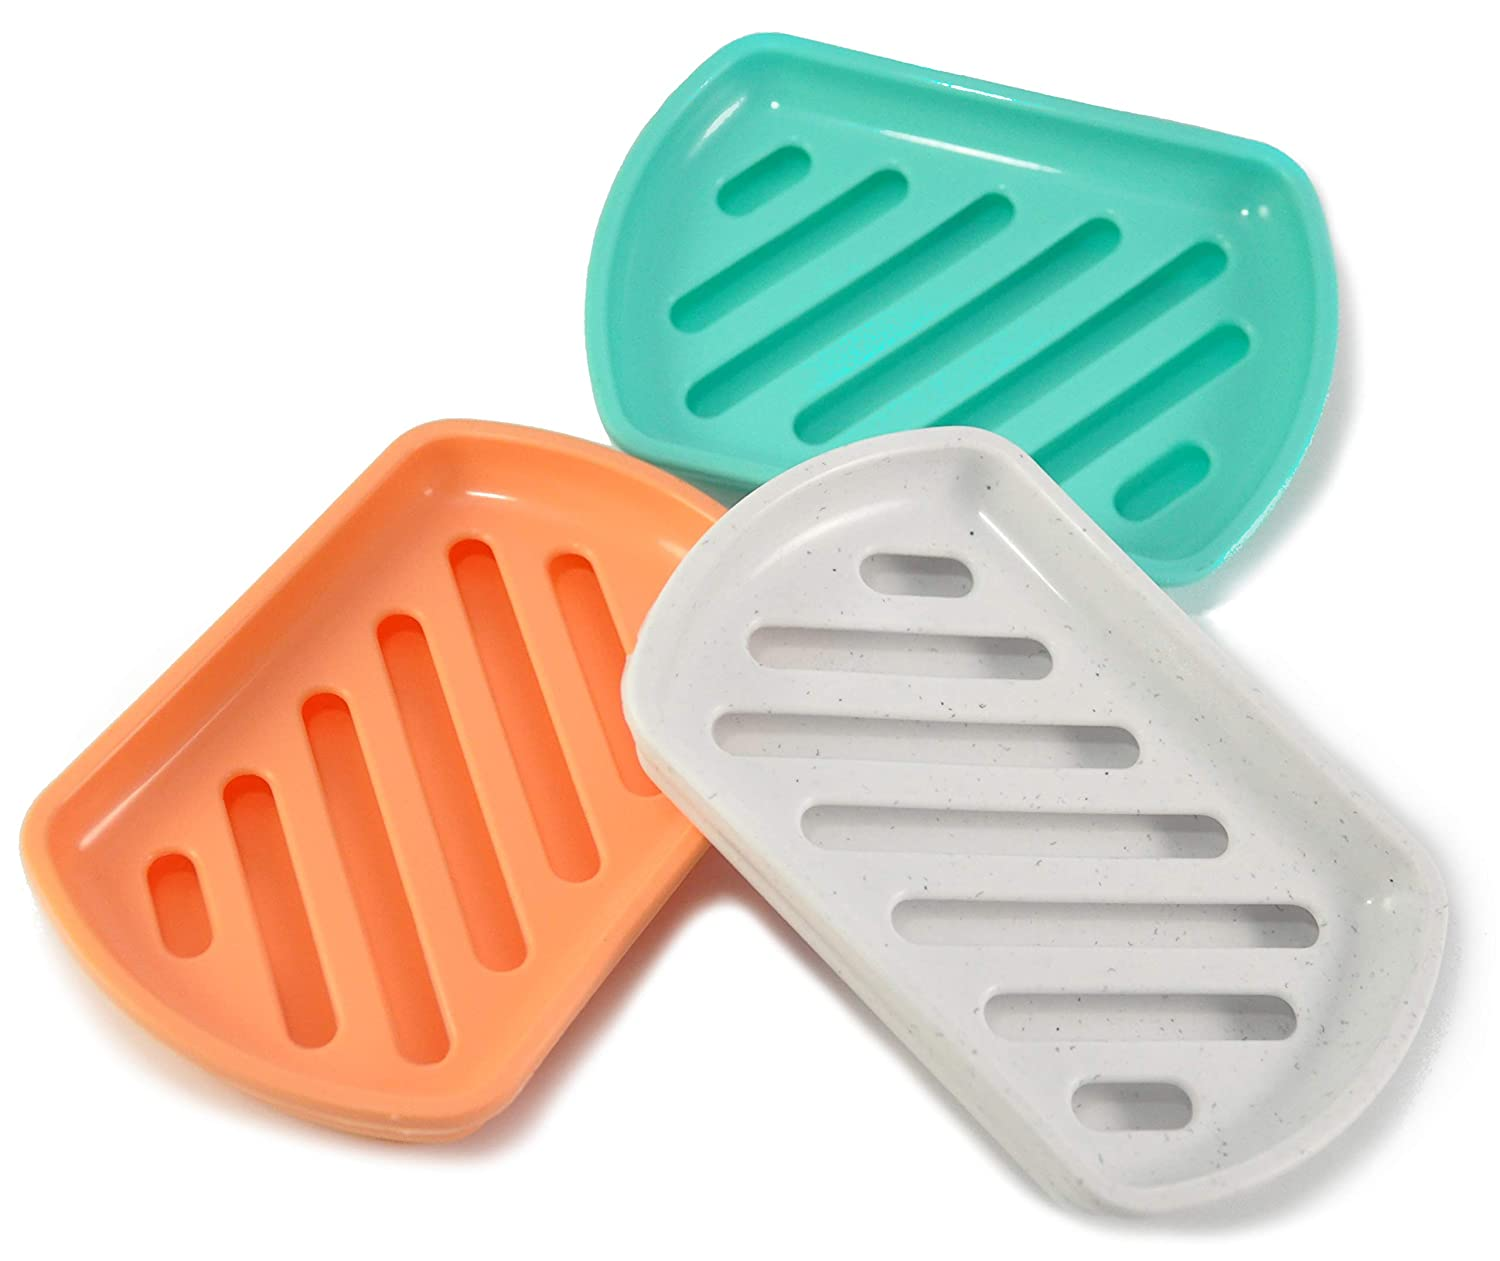 3-Pack Brush scrubbers Clean /& Dry for countertops draining Dish Keeps soap bar MHH 1002336 Soap Holders Violet mudroom Kitchen sponges Slotted Drainer Bathroom Two Layer Tray White Orange